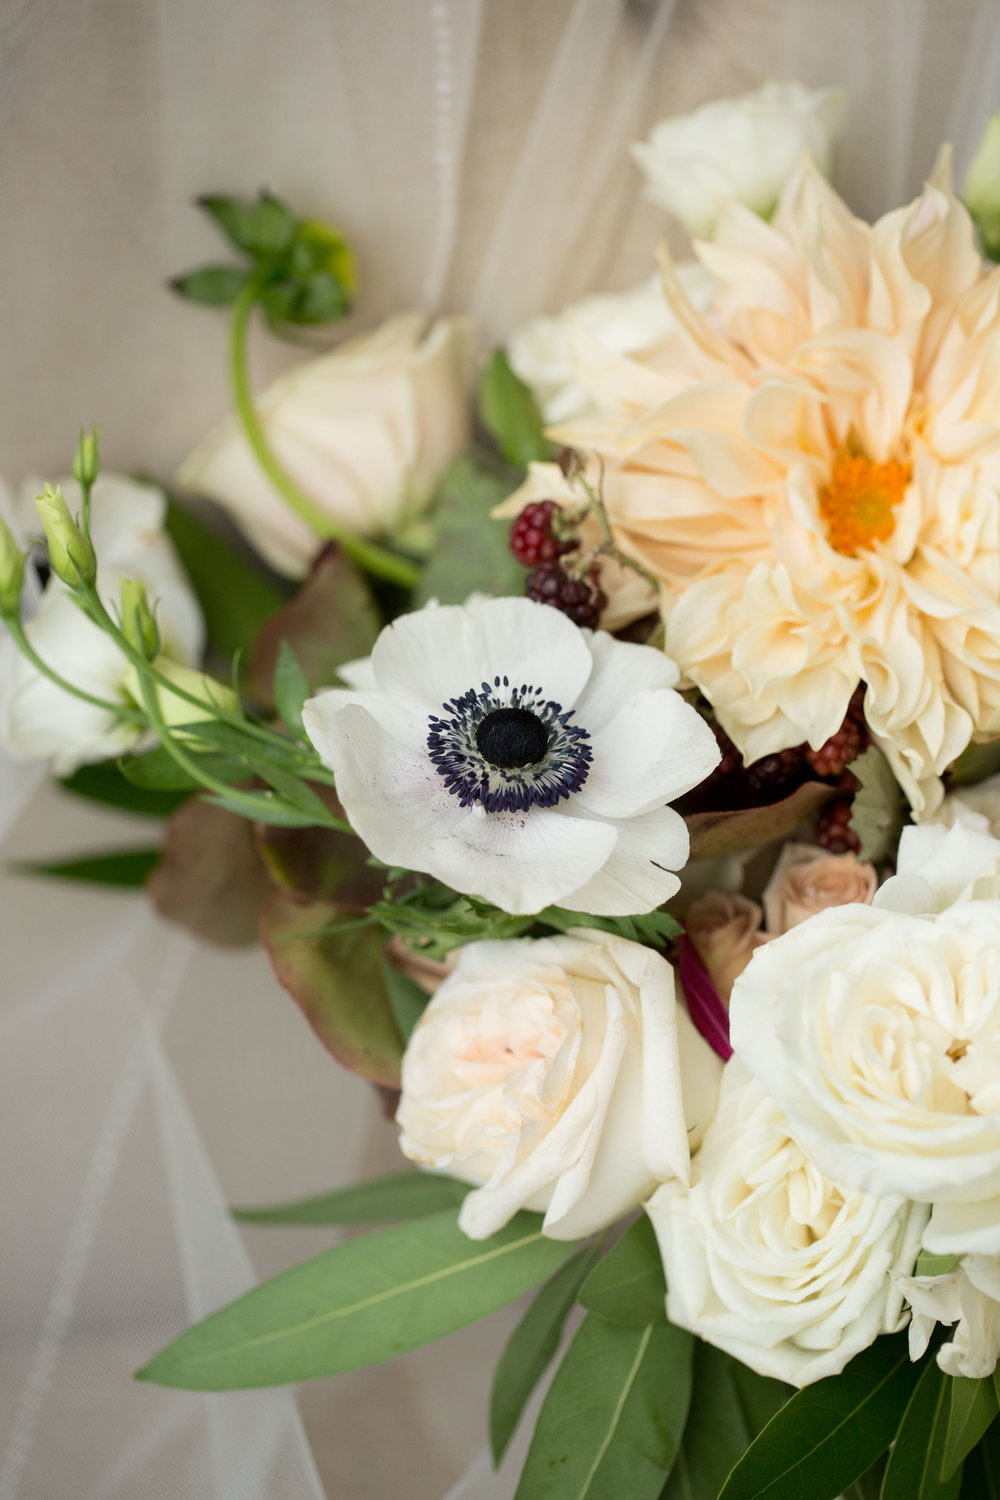 Floral by Fleur Inc, Photo by Natalie Probst, Cafe au Lait Dahlia, Garden Inspired Chicago Wedding